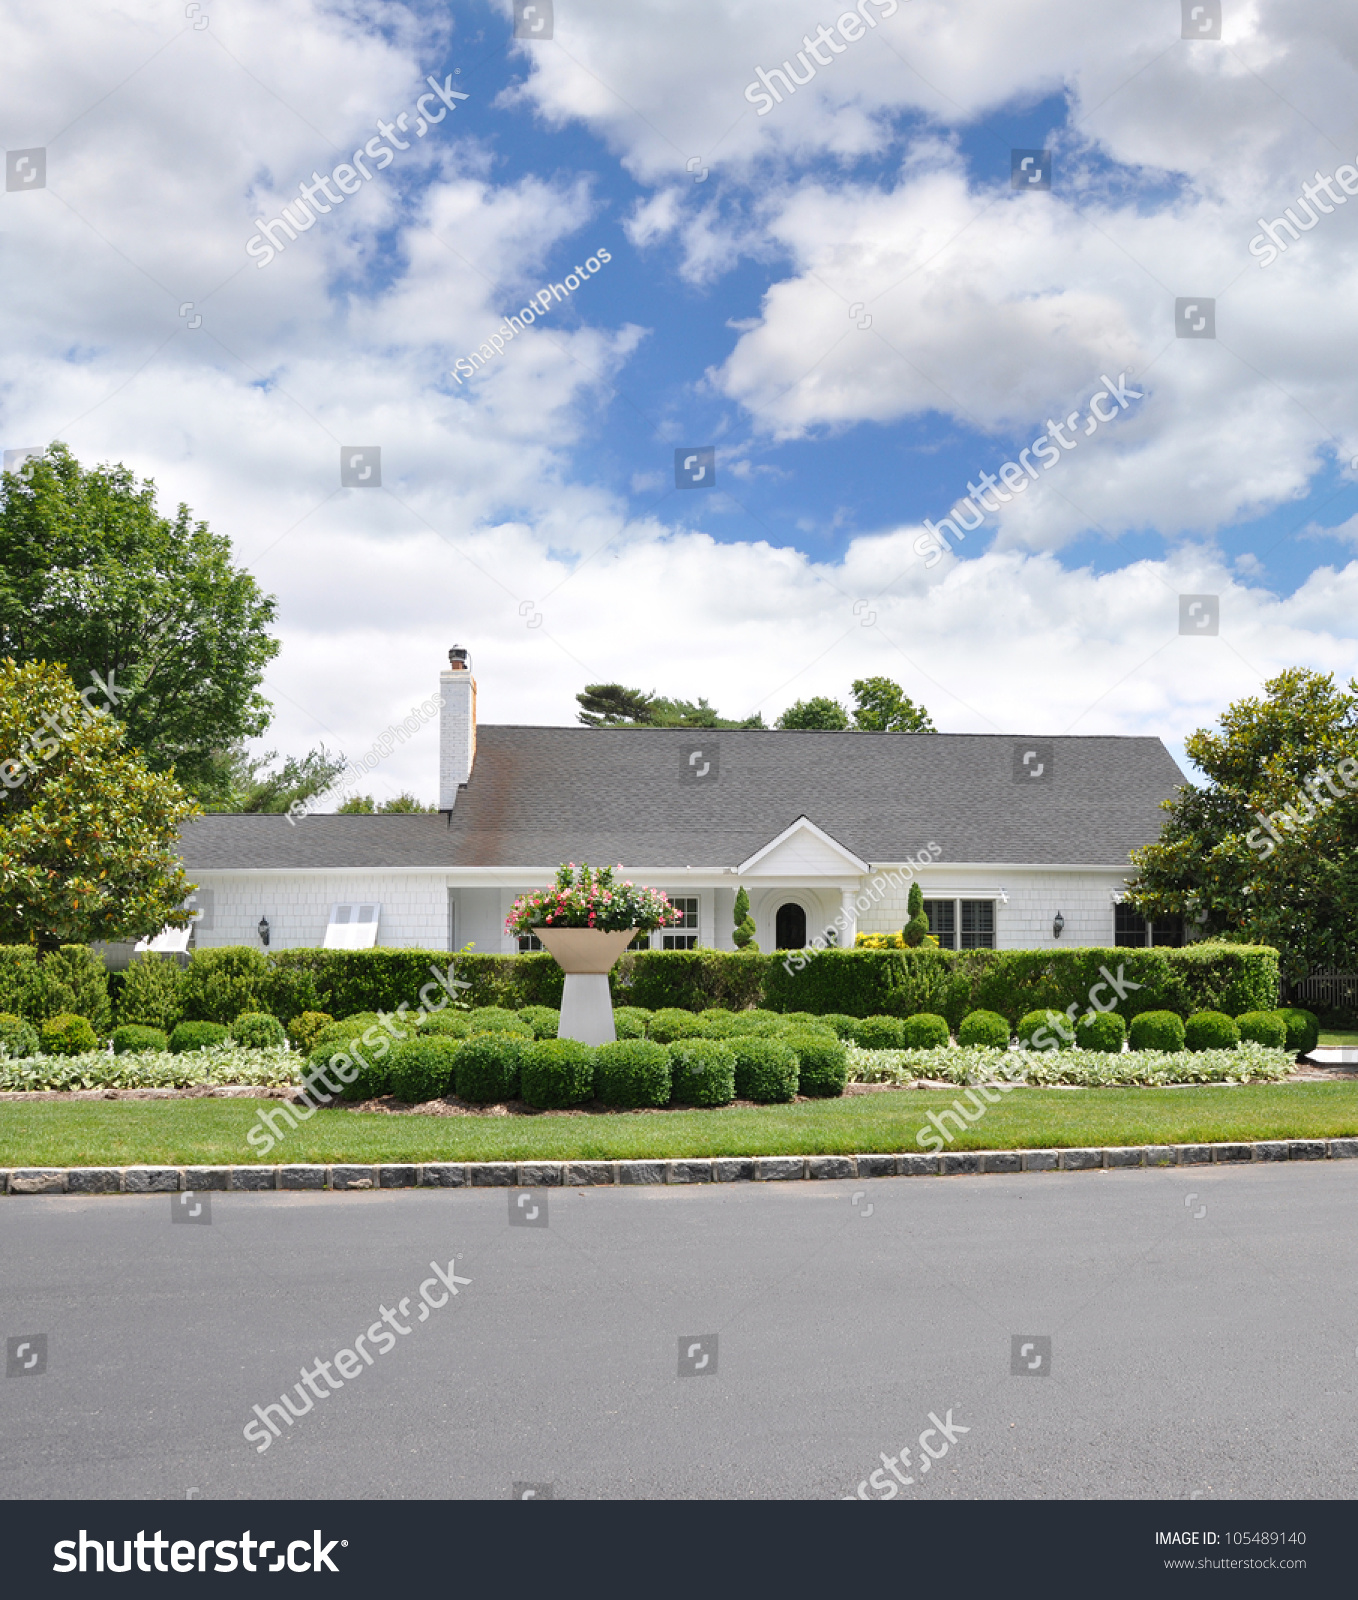 Landscaped Front Yard Suburban Ranch Style Home Blue Cloud